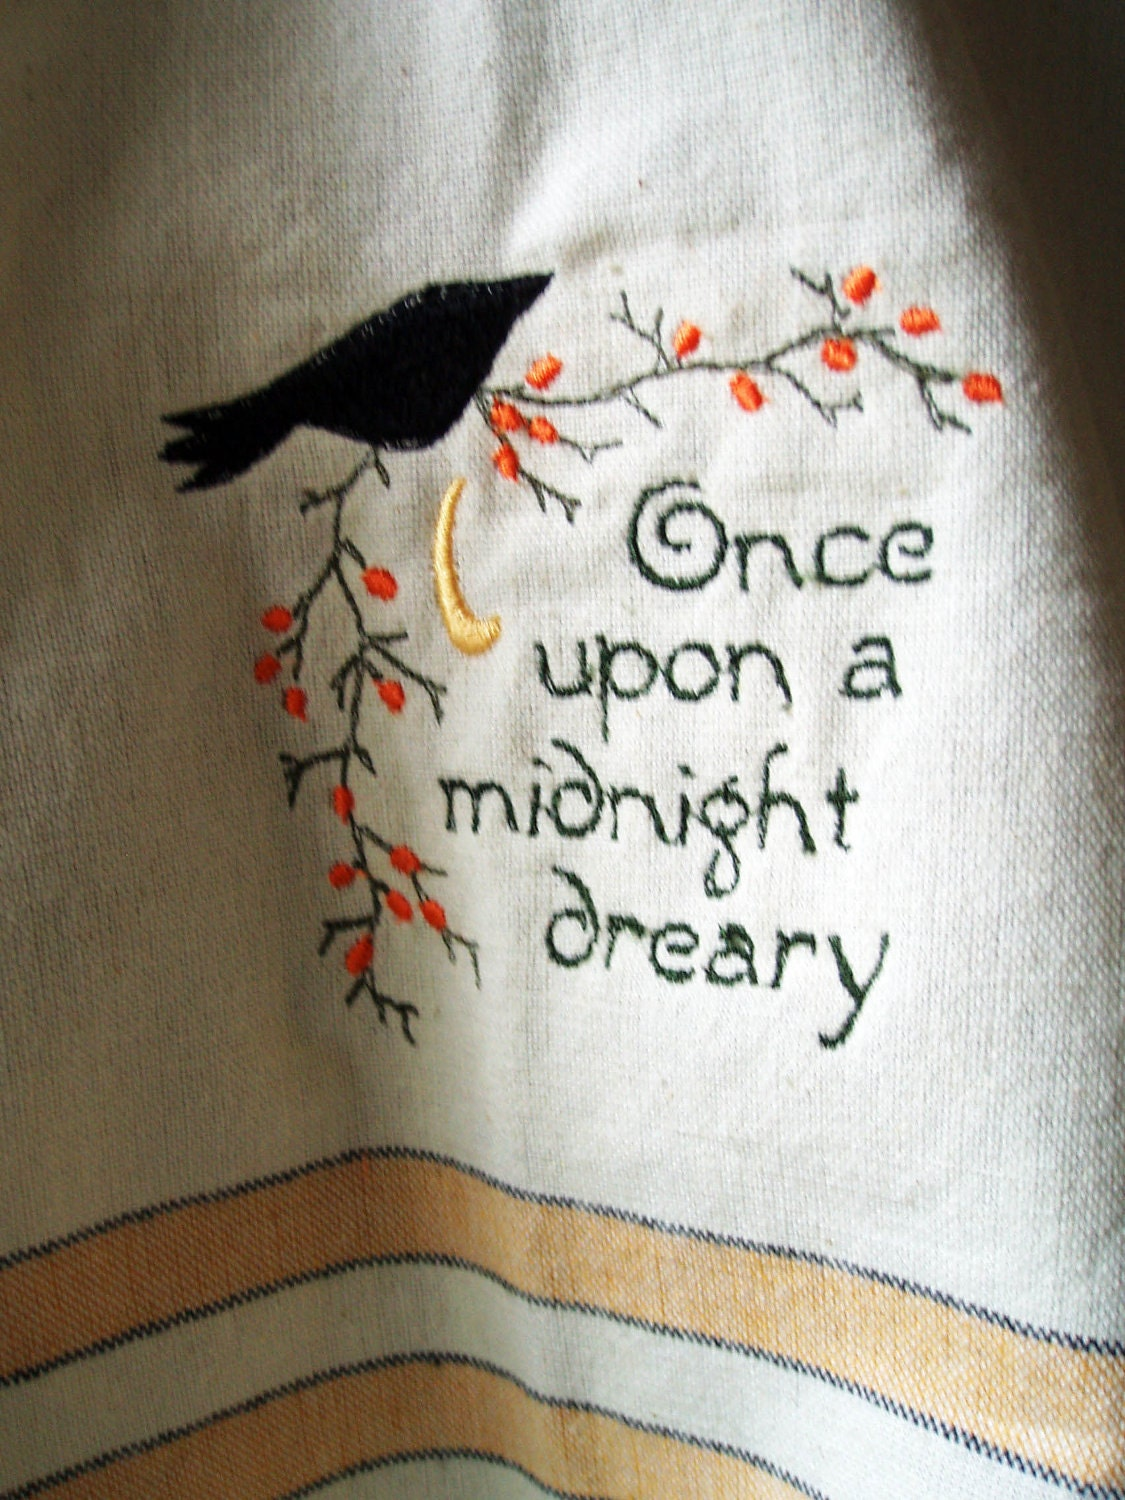 edgar allen poes the raven The raven – edgar allan poe once upon a midnight dreary, while i pondered, weak and weary, over many a quaint and curious volume of forgotten lore, while i nodded, nearly napping, suddenly there came a tapping, as of some one gently rapping, rapping at my chamber door.